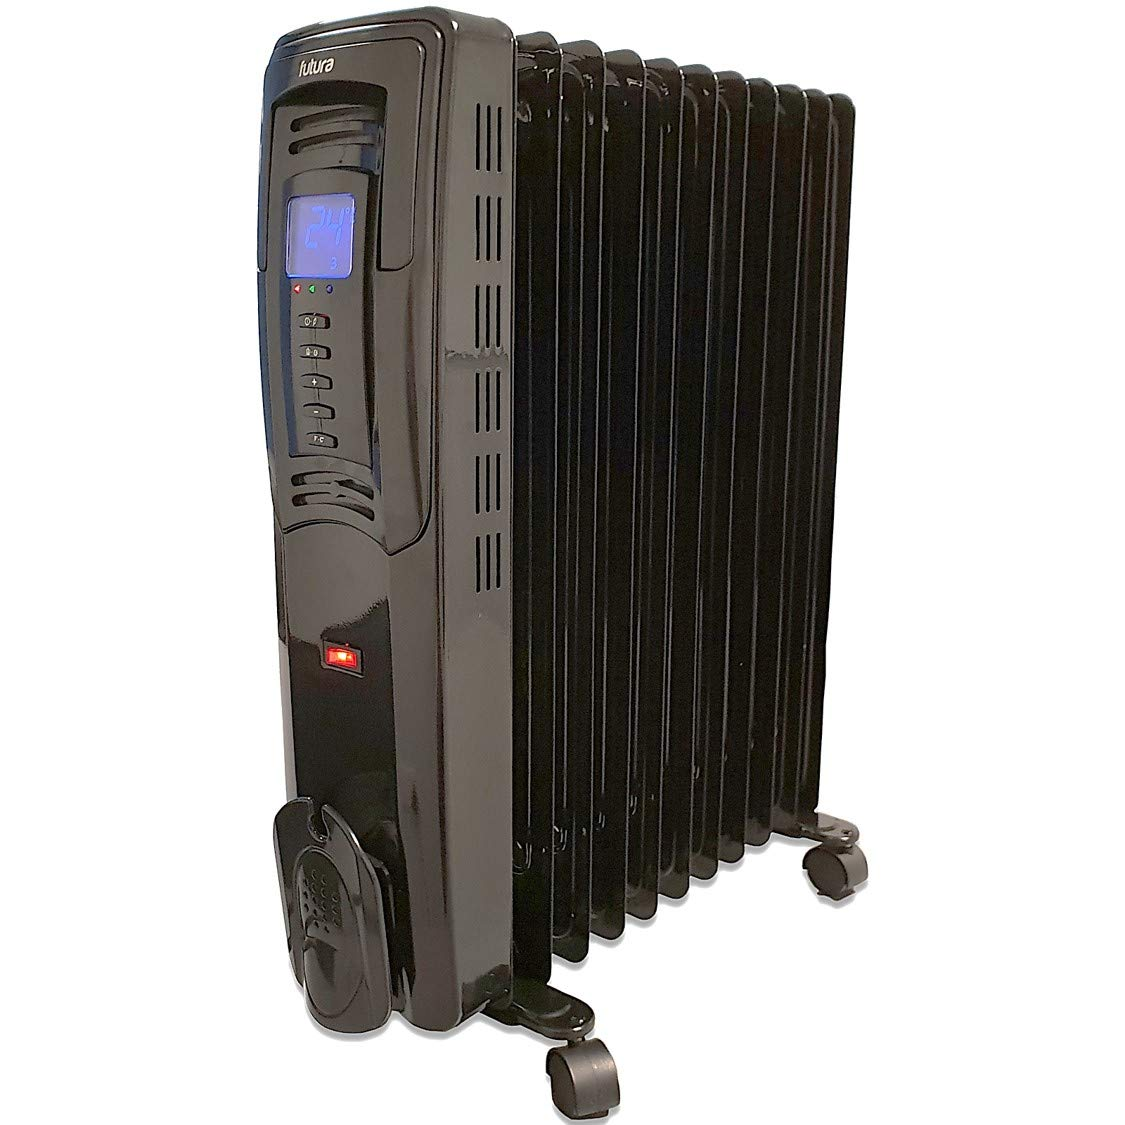 Futura Deluxe Digital Large Oil Filled Radiator 2500W, 3 Power Settings Countdown Timer Adjustable Thermostat, 11 Fin Electric Oil Heater, Oil Radiator Thermal Safety Overheat Protection Tip Over Cut off Extra Safety (Grey)